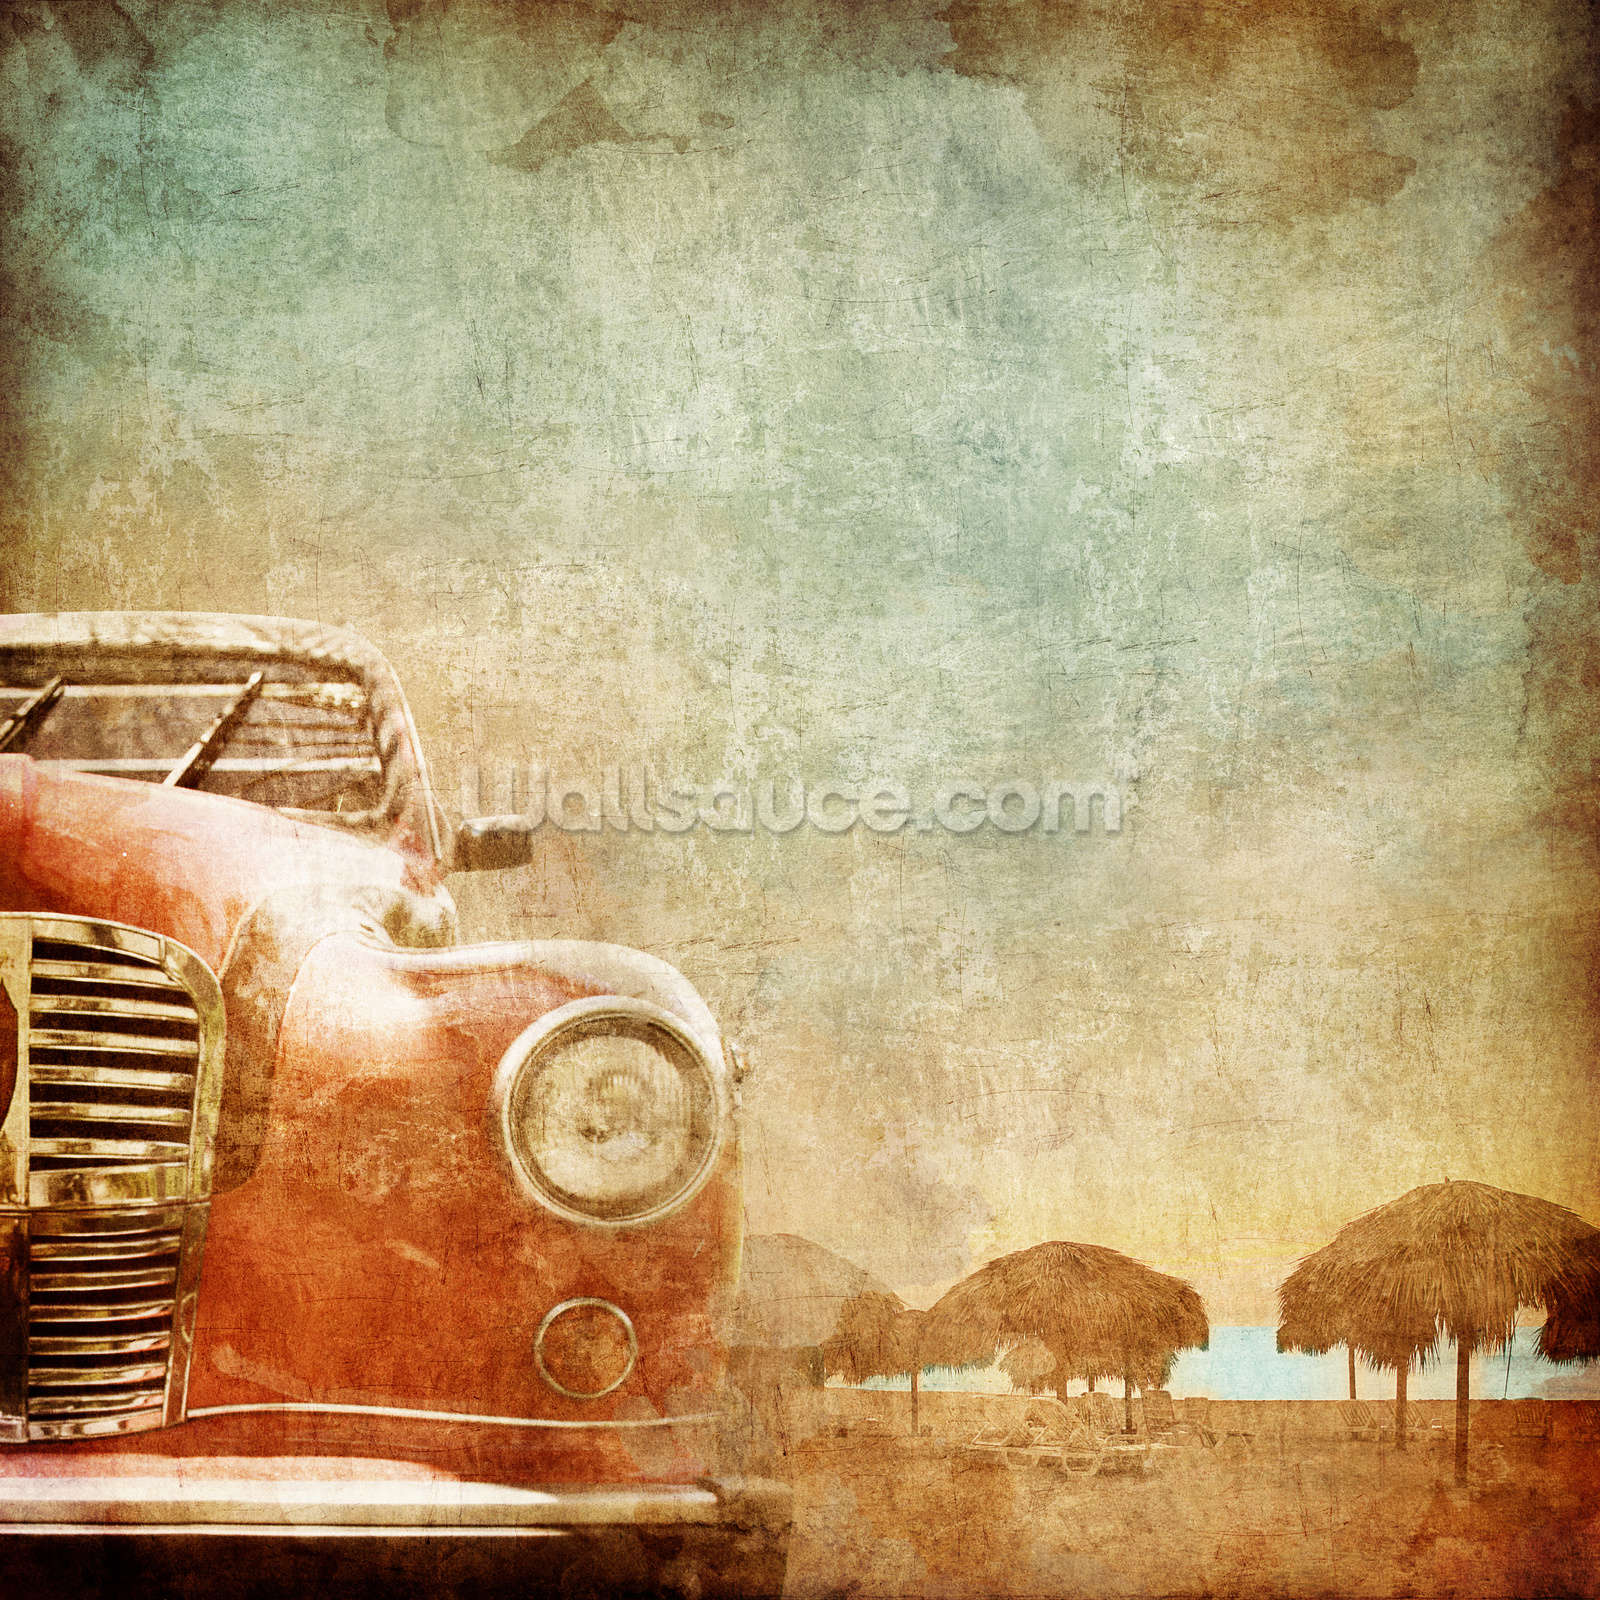 Vintage car wallpaper wall mural wallsauce usa for Antique wallpaper mural